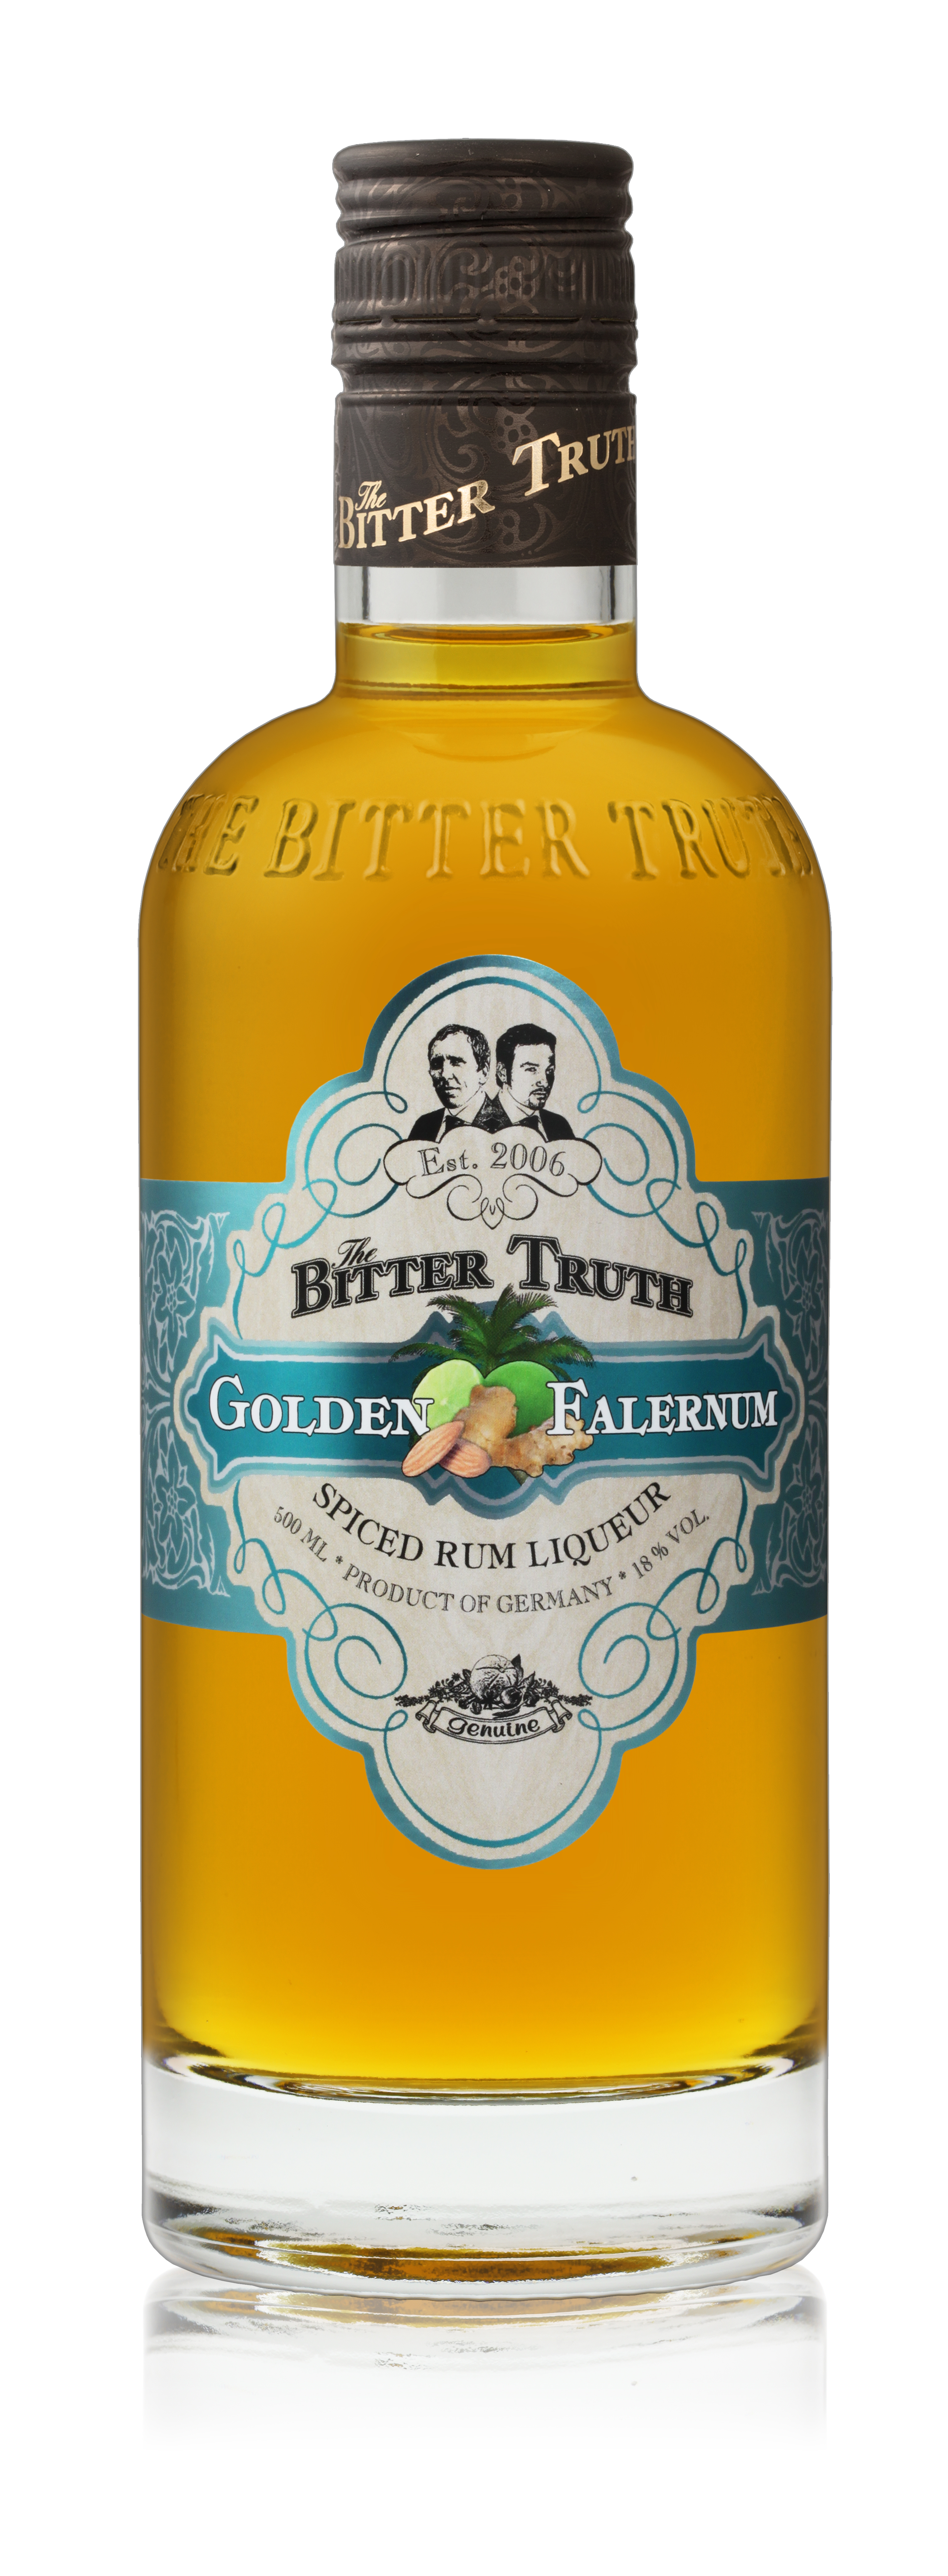 The Bitter Truth Golden Falernum